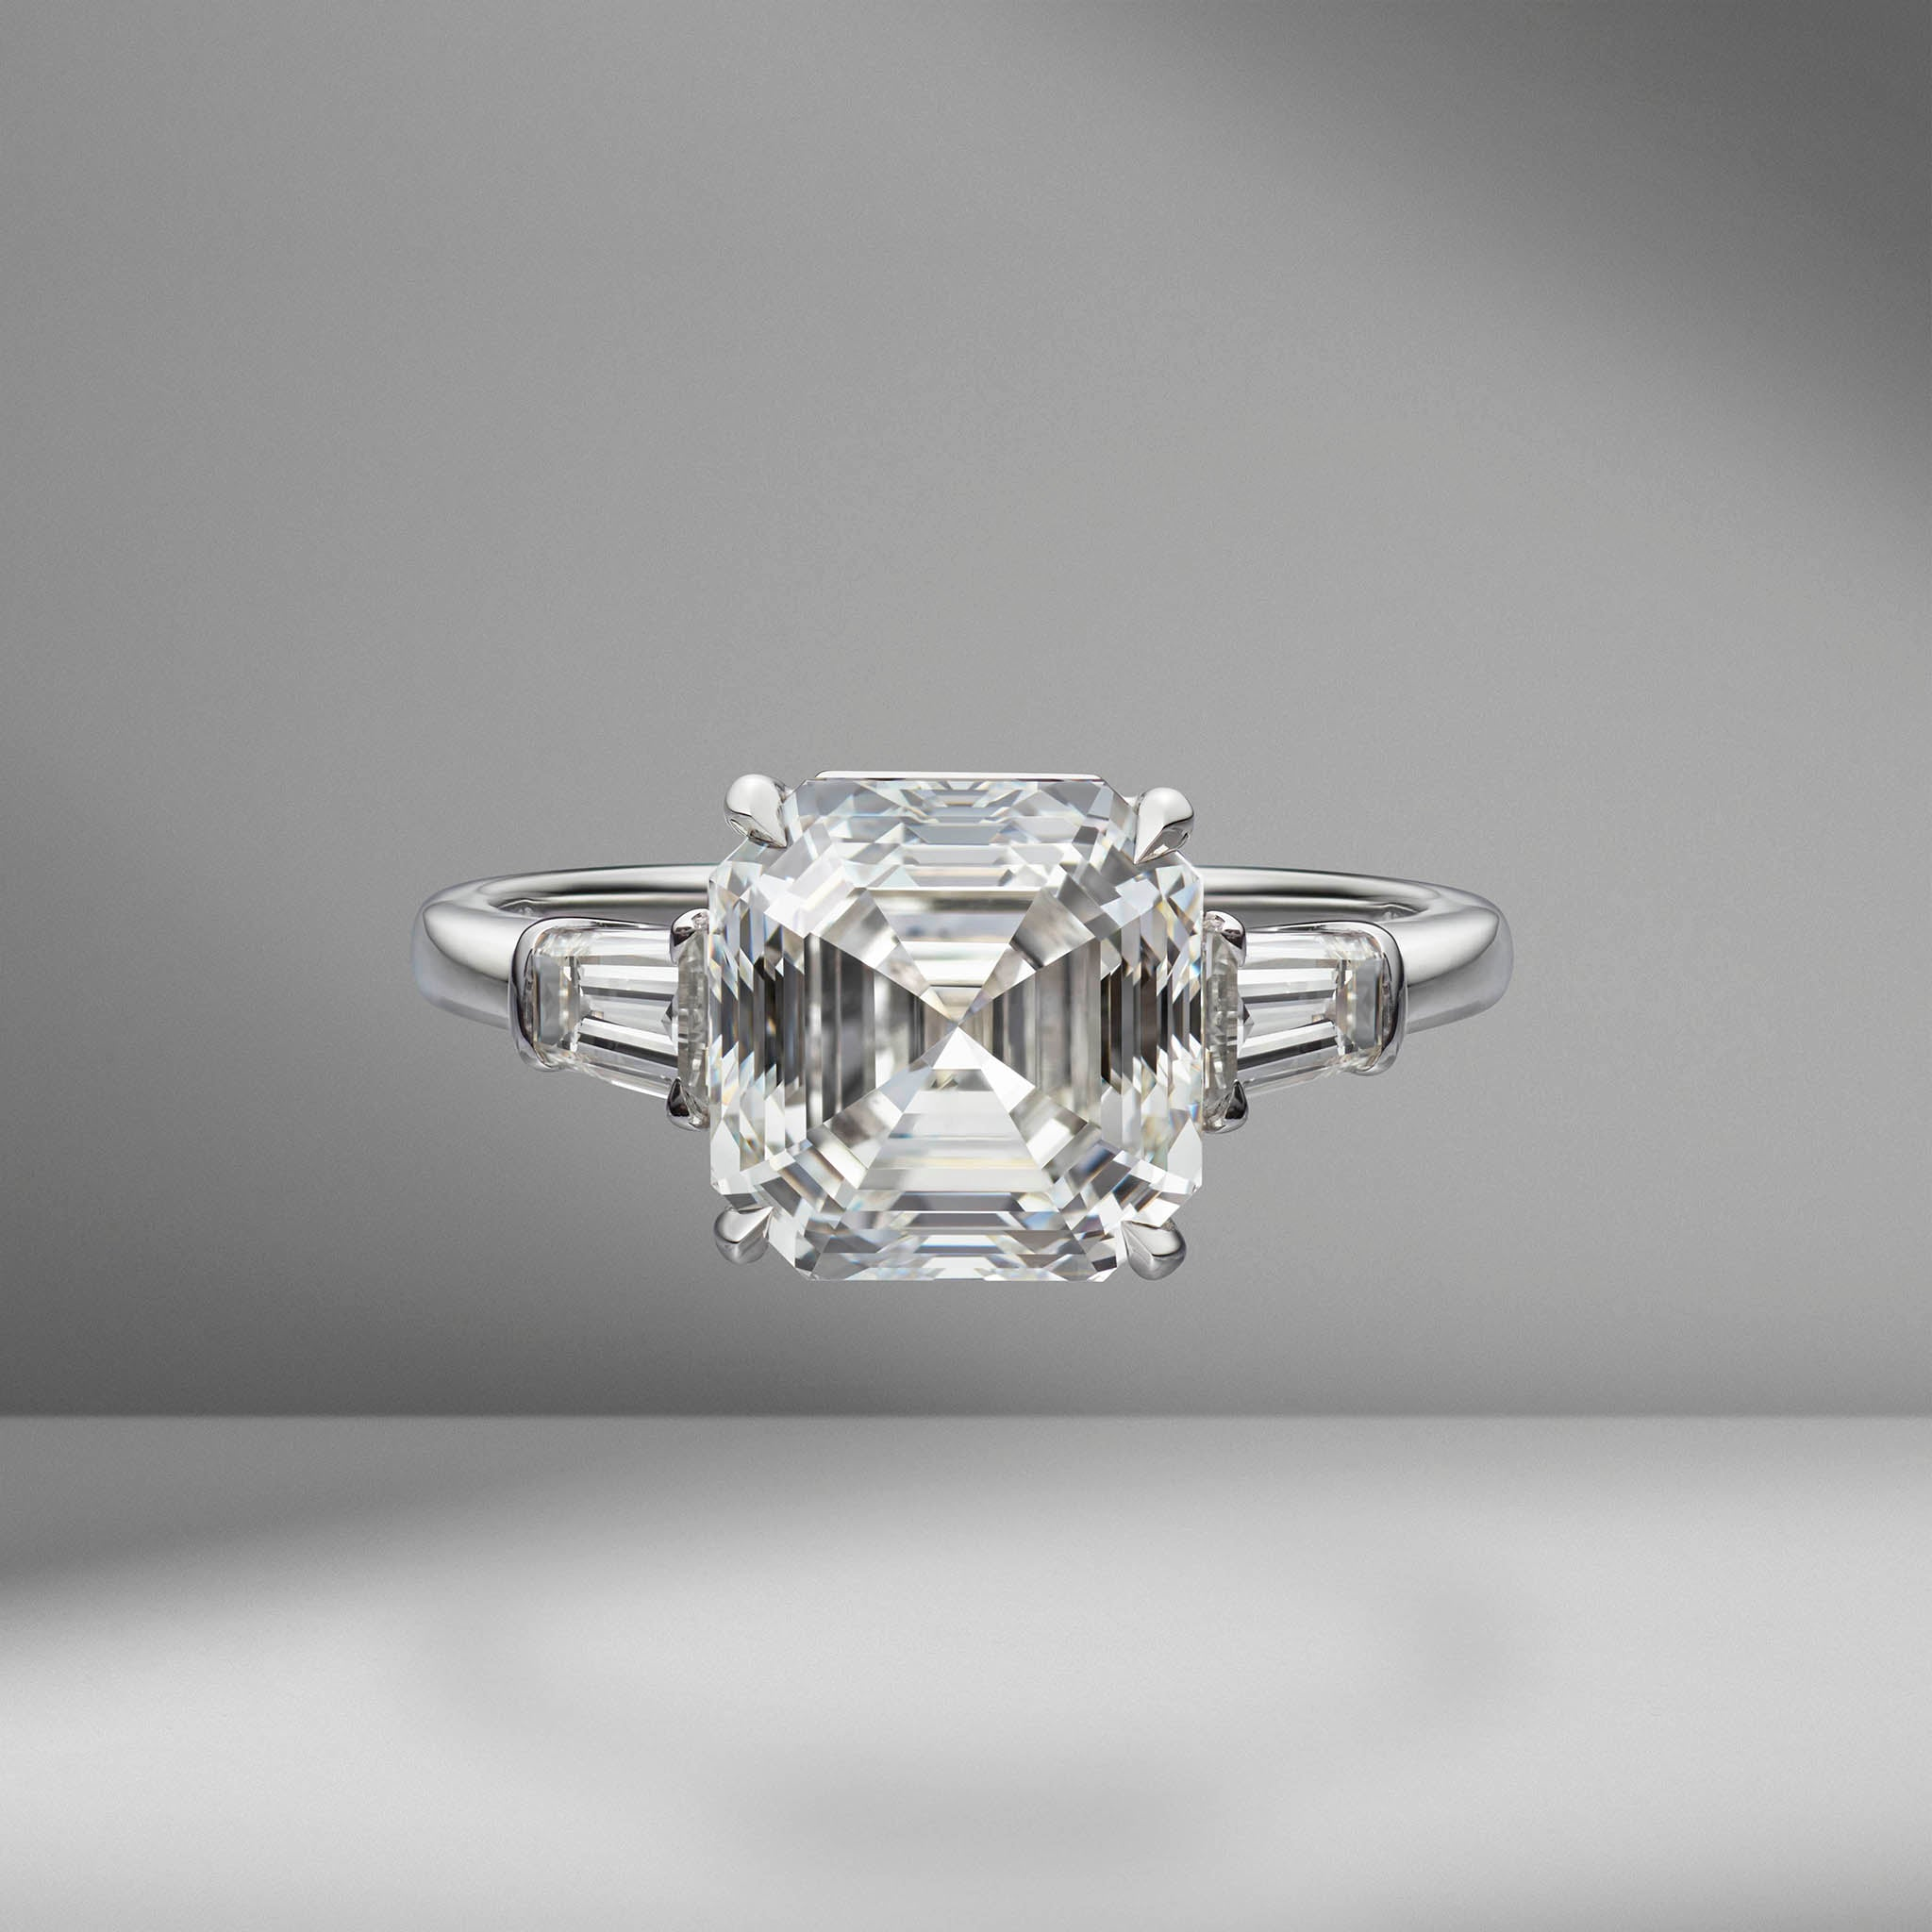 Asscher Cut Engagement Ring with Tapered Baguettes